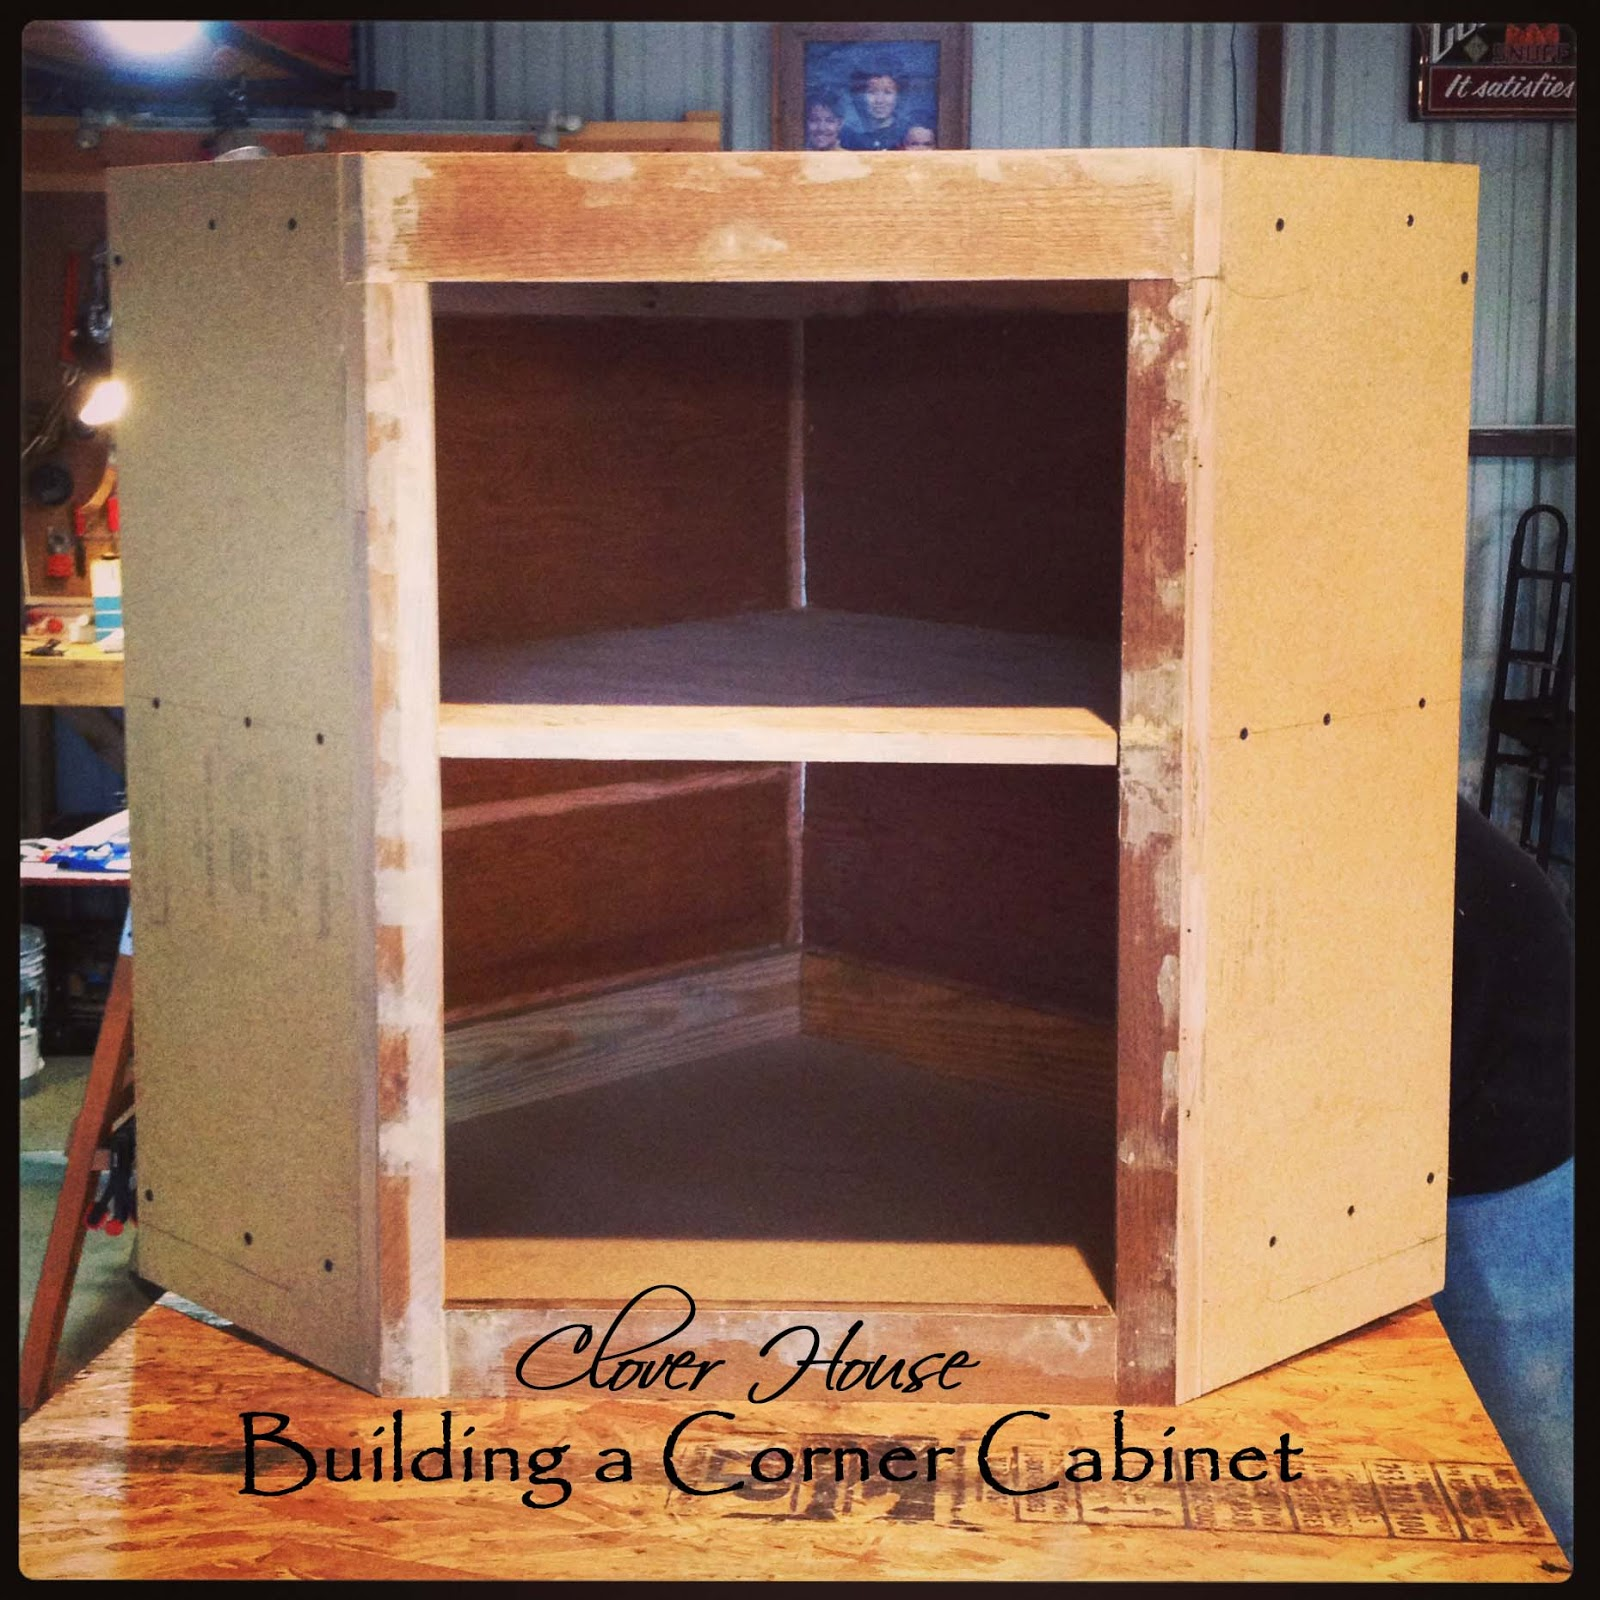 How To Build A Corner Kitchen Cabinet Clover House Building A Corner Cabinet